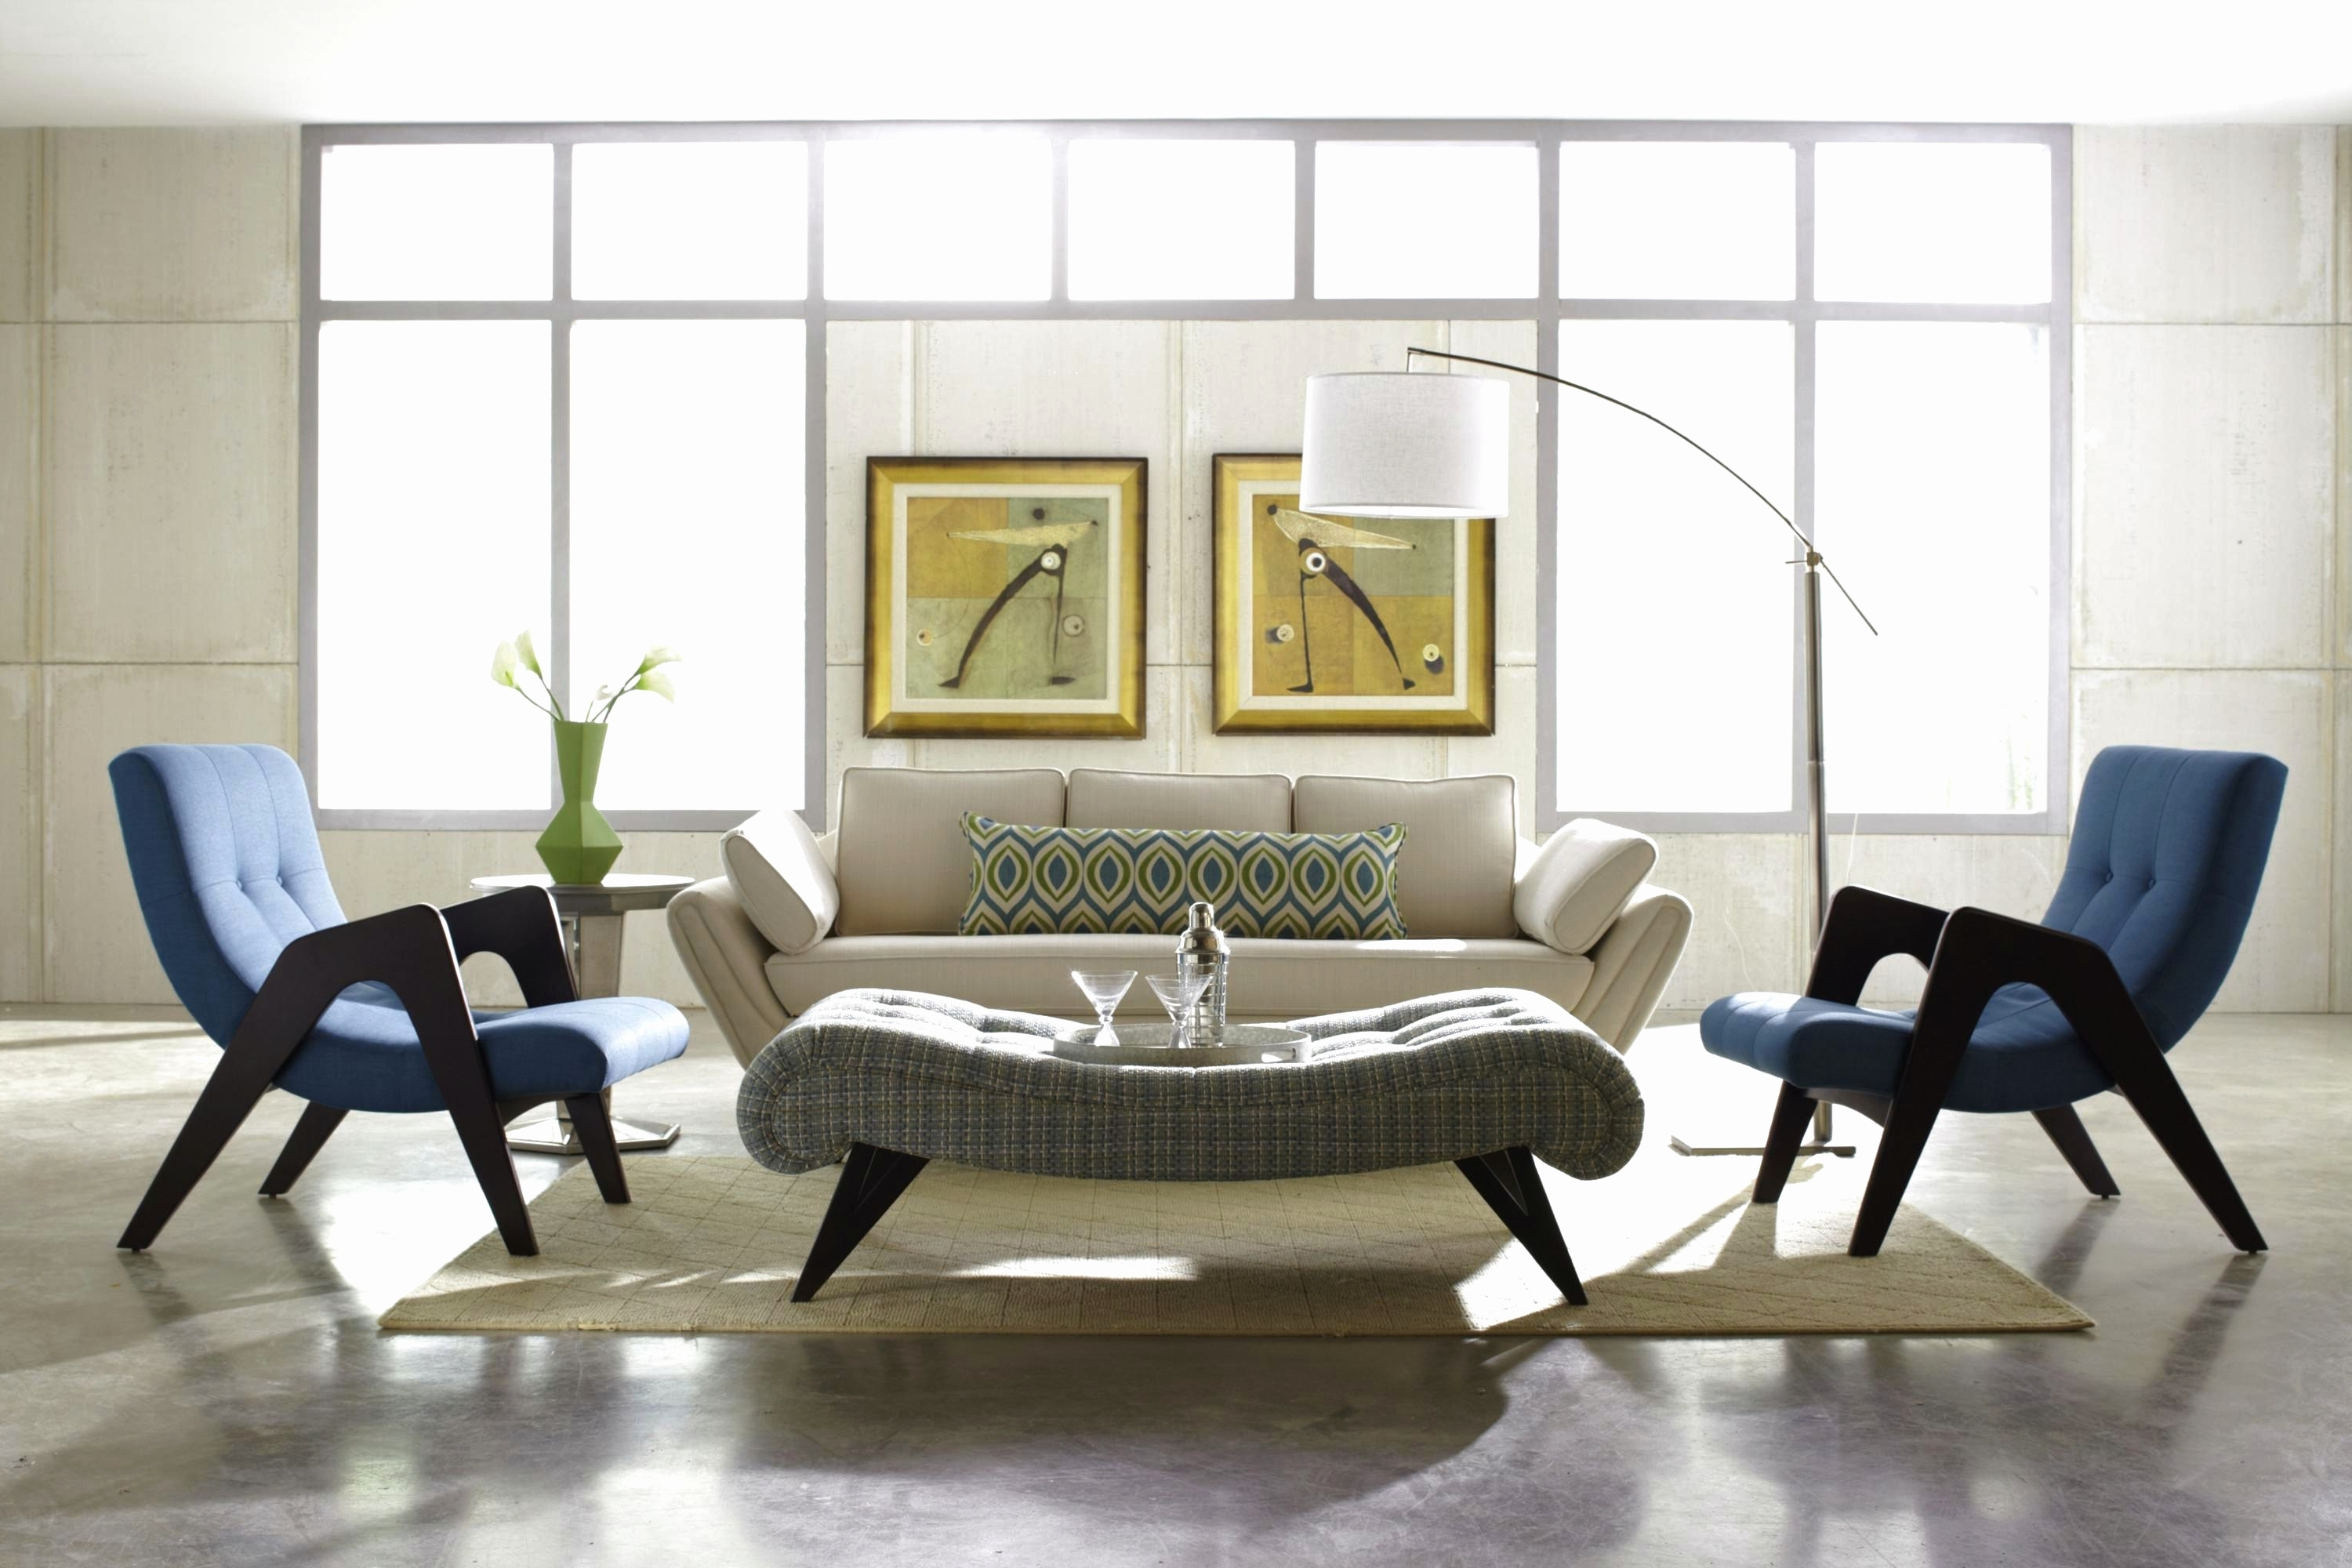 Fashionable Chaise Lounge Chairs For Small Spaces With Living Room : Chaise Lounge With Ottoman Cream Tufted Chaise (View 12 of 15)